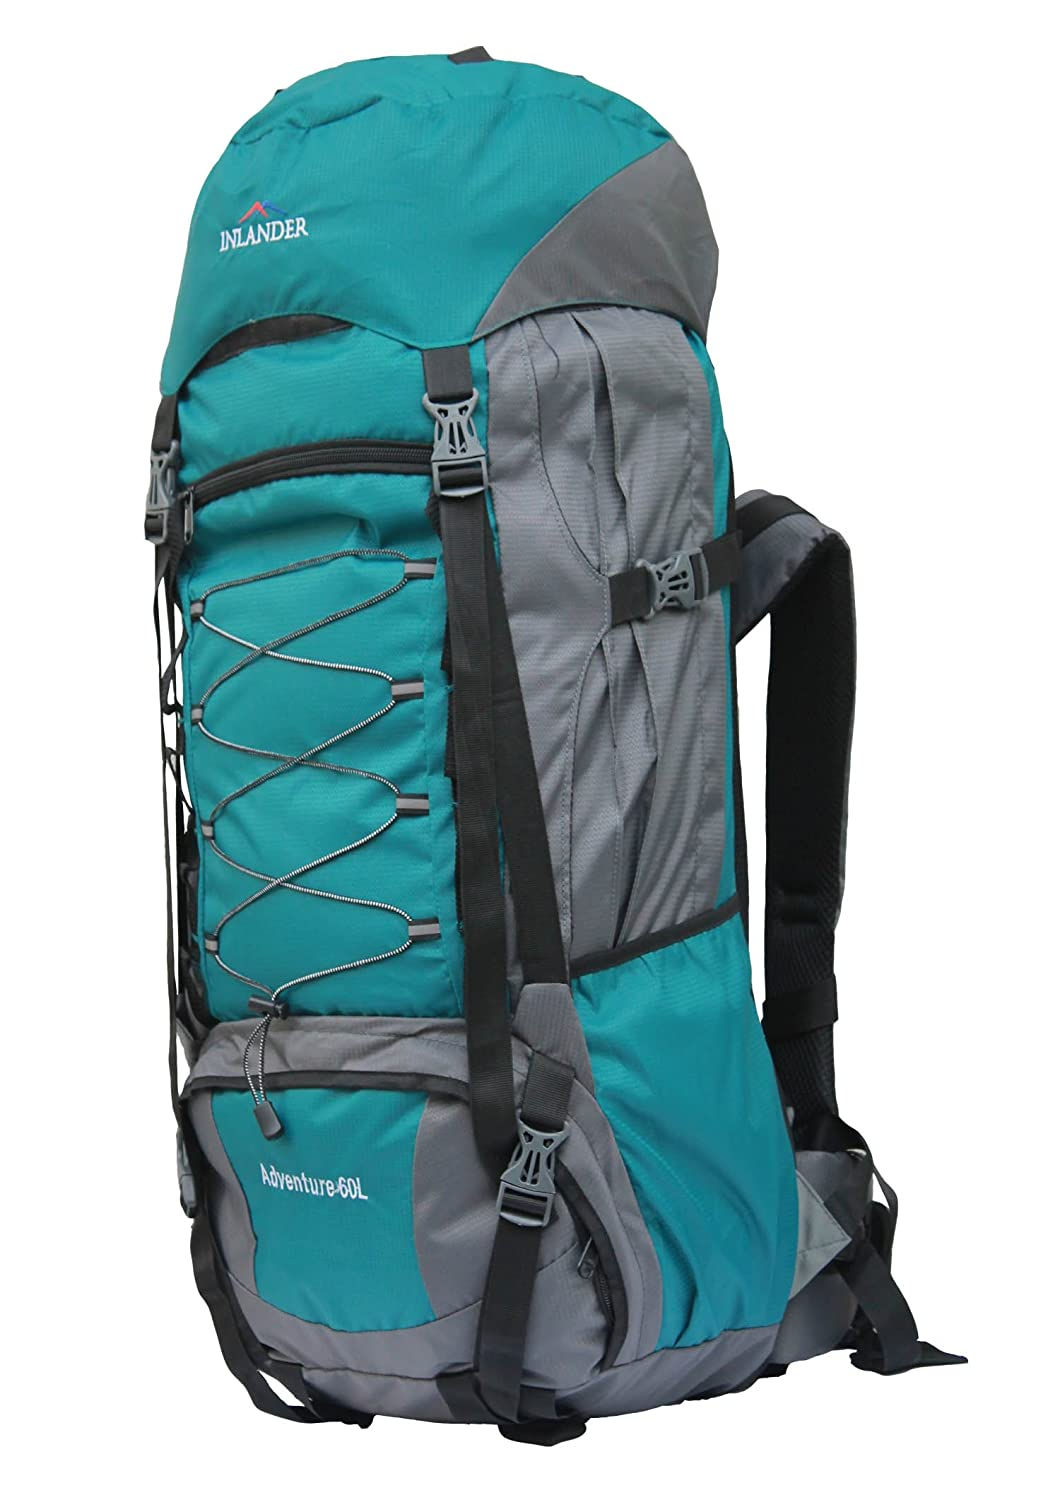 d8a98ee814c9b INLANDER 6001 Teal Blue 60L Rucksack Daypack Backpack Bag for Travel Hiking  Trekking   Camping for Men   Women  Amazon.in  Bags